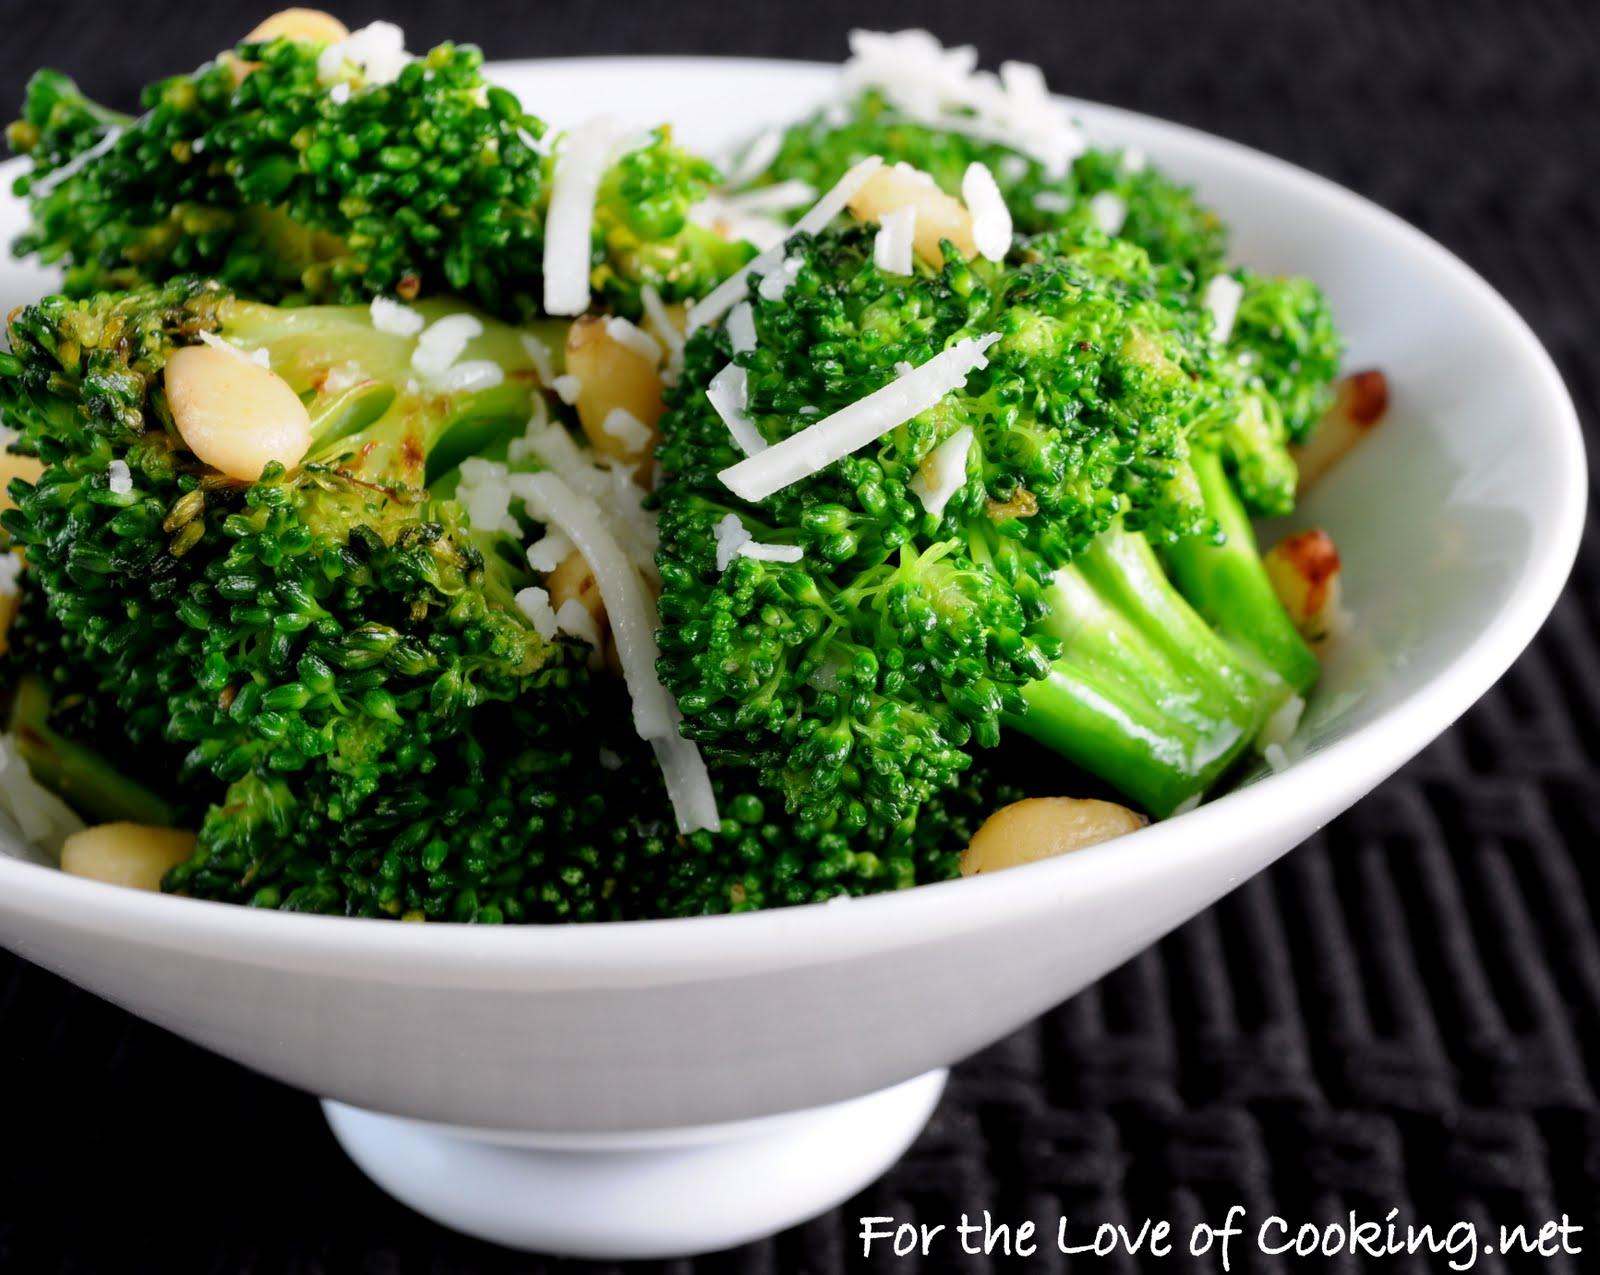 Broccoli with Garlic, Pine Nuts, and Asiago Cheese | For the Love of ...